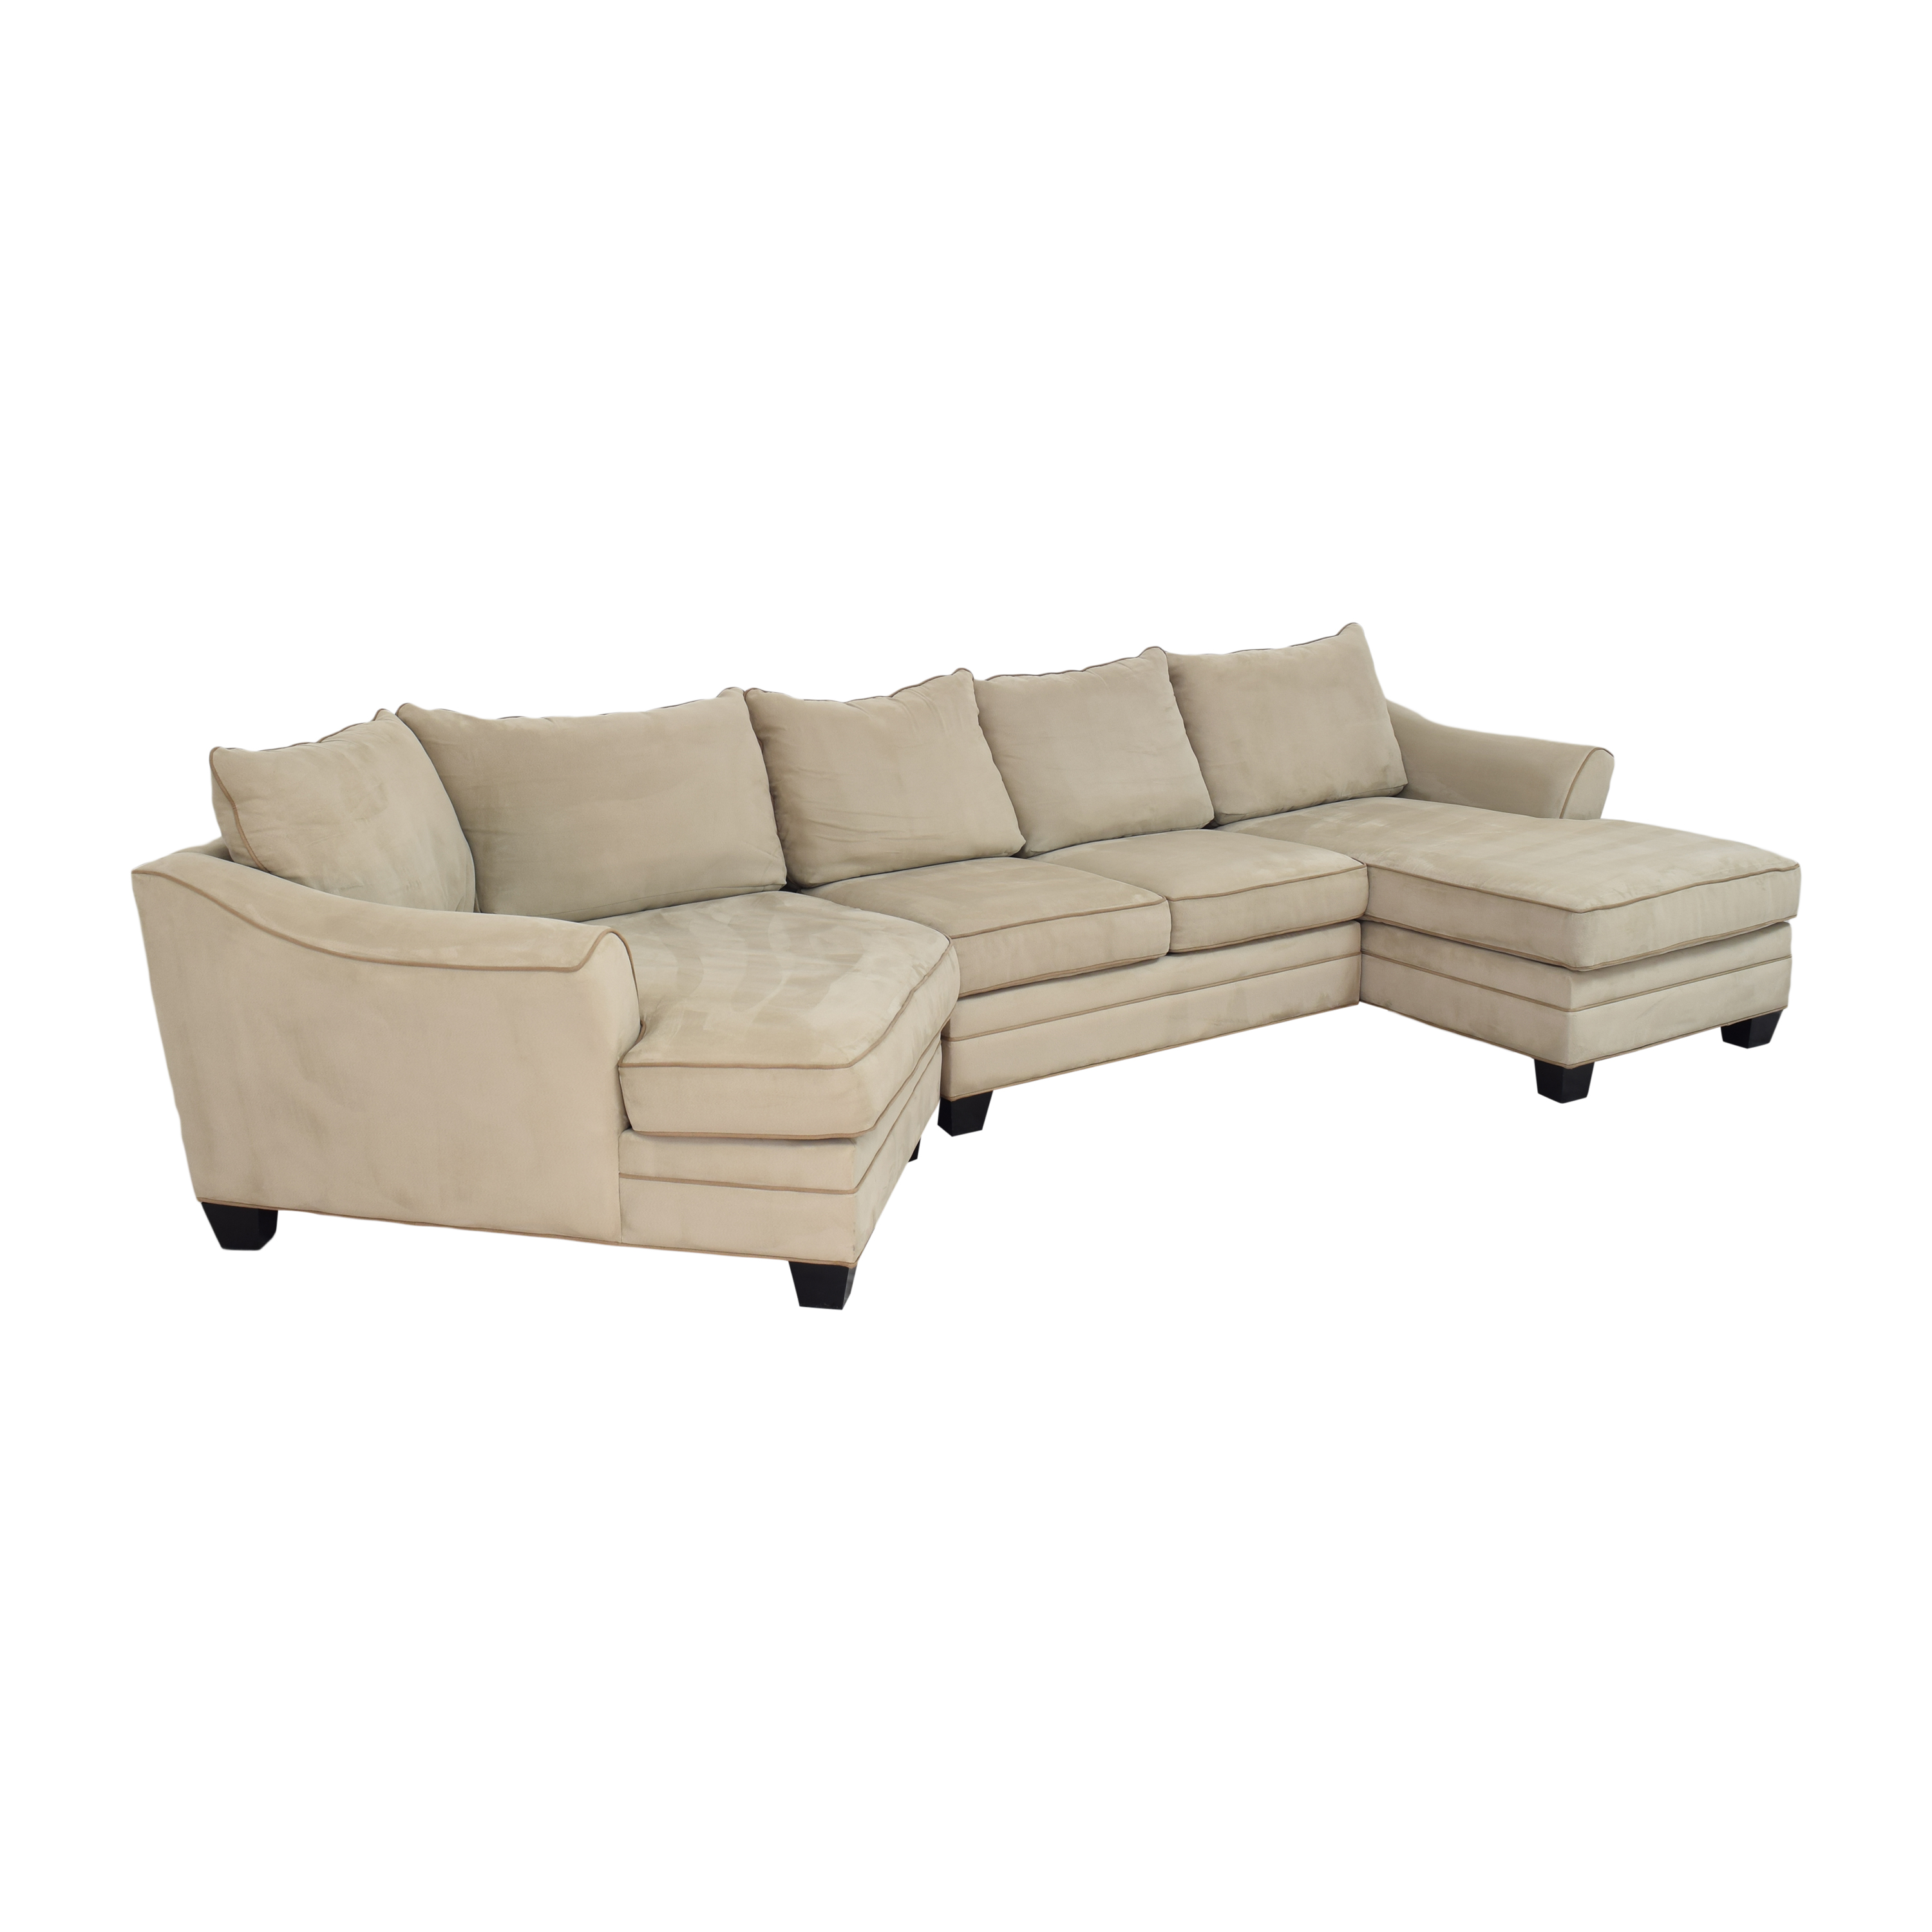 Raymour & Flanigan Foresthill Sectional Sofa / Sectionals